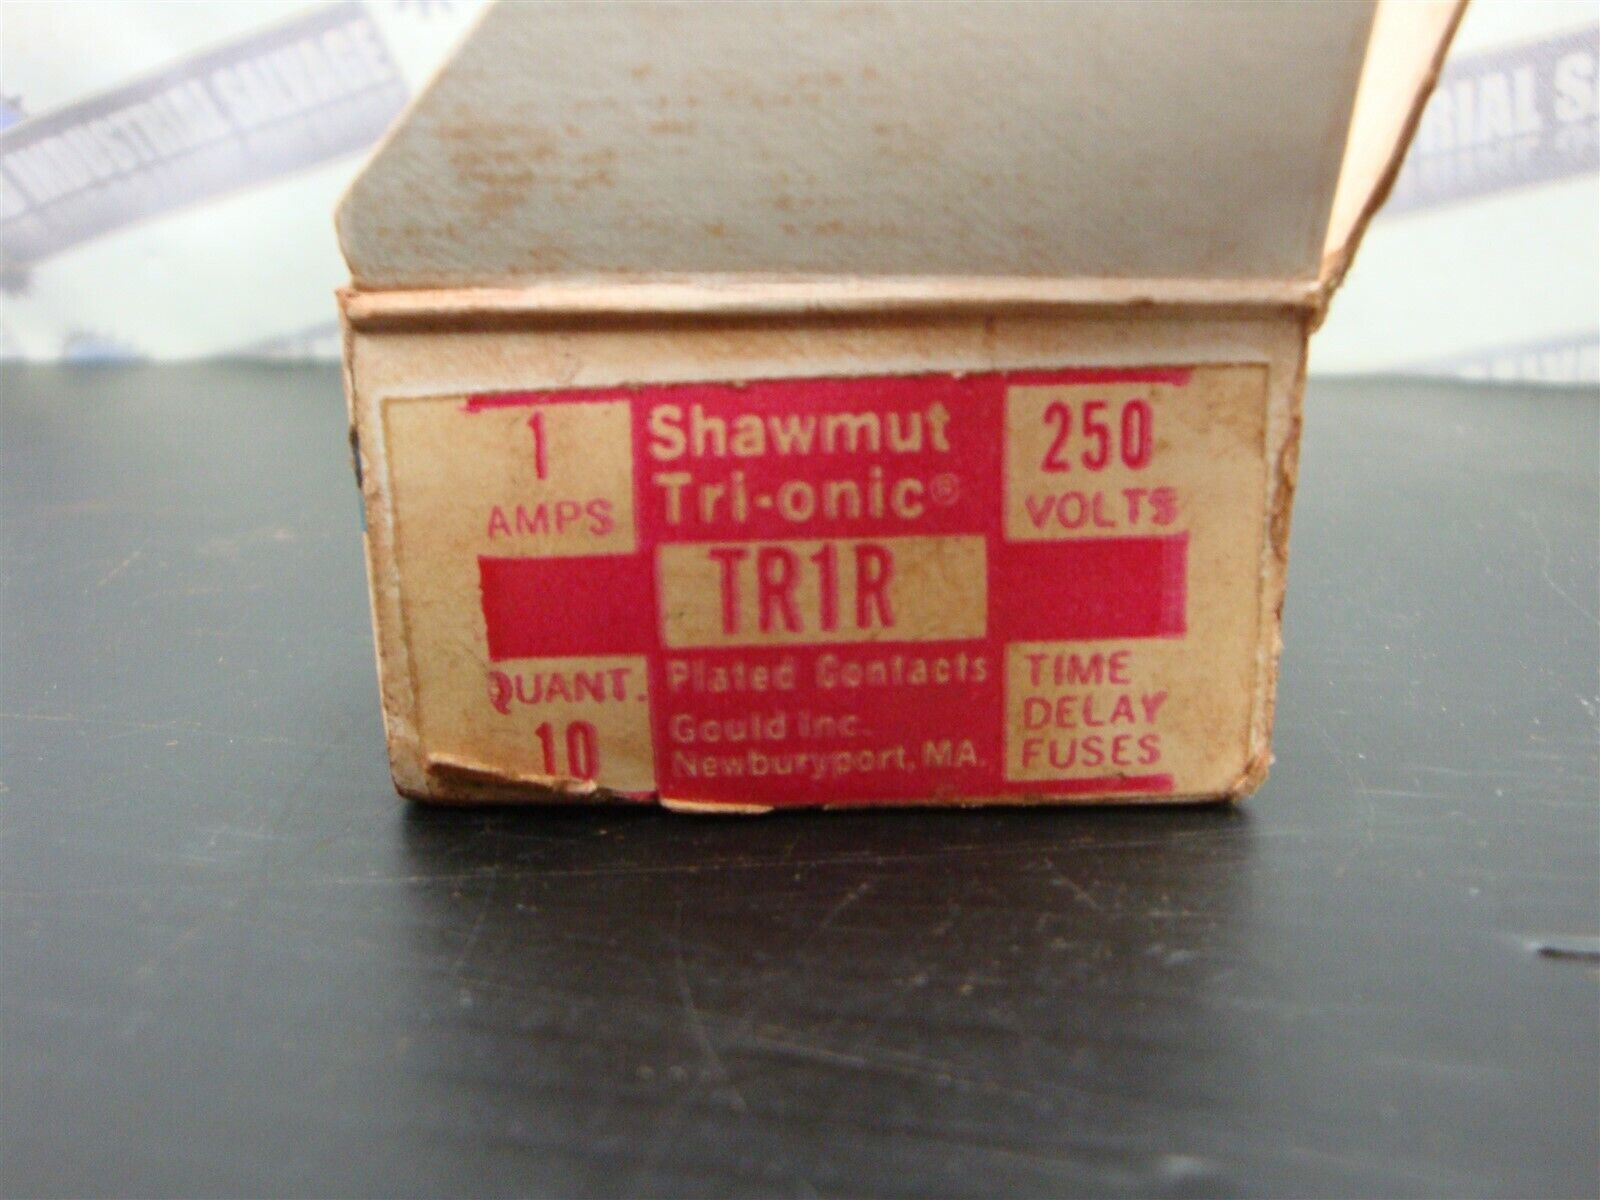 Gould Shawmut Tri-onic 1 Amp 250 Volts Time Delay Fuse TR-1R Box of 10